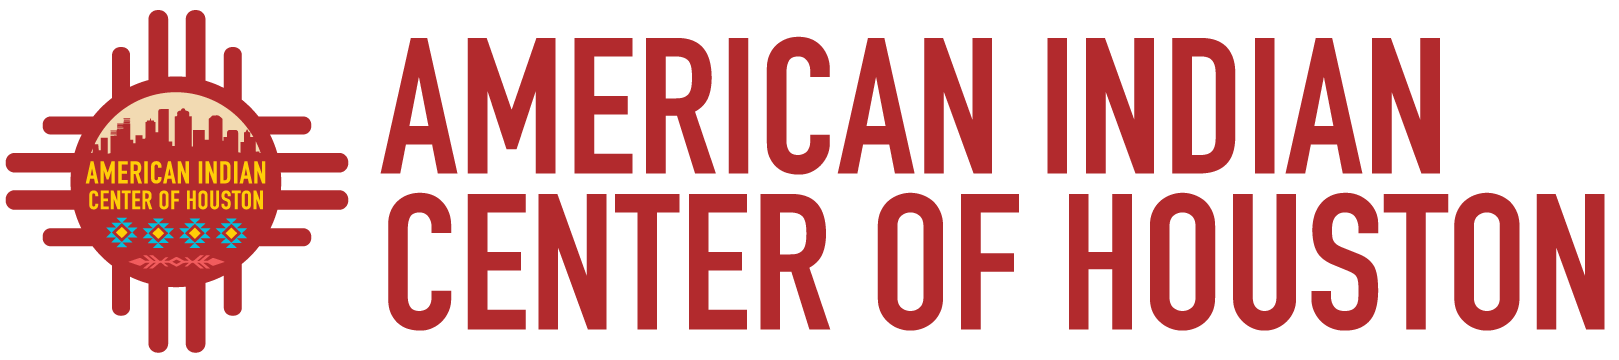 American Indian Center of Houston